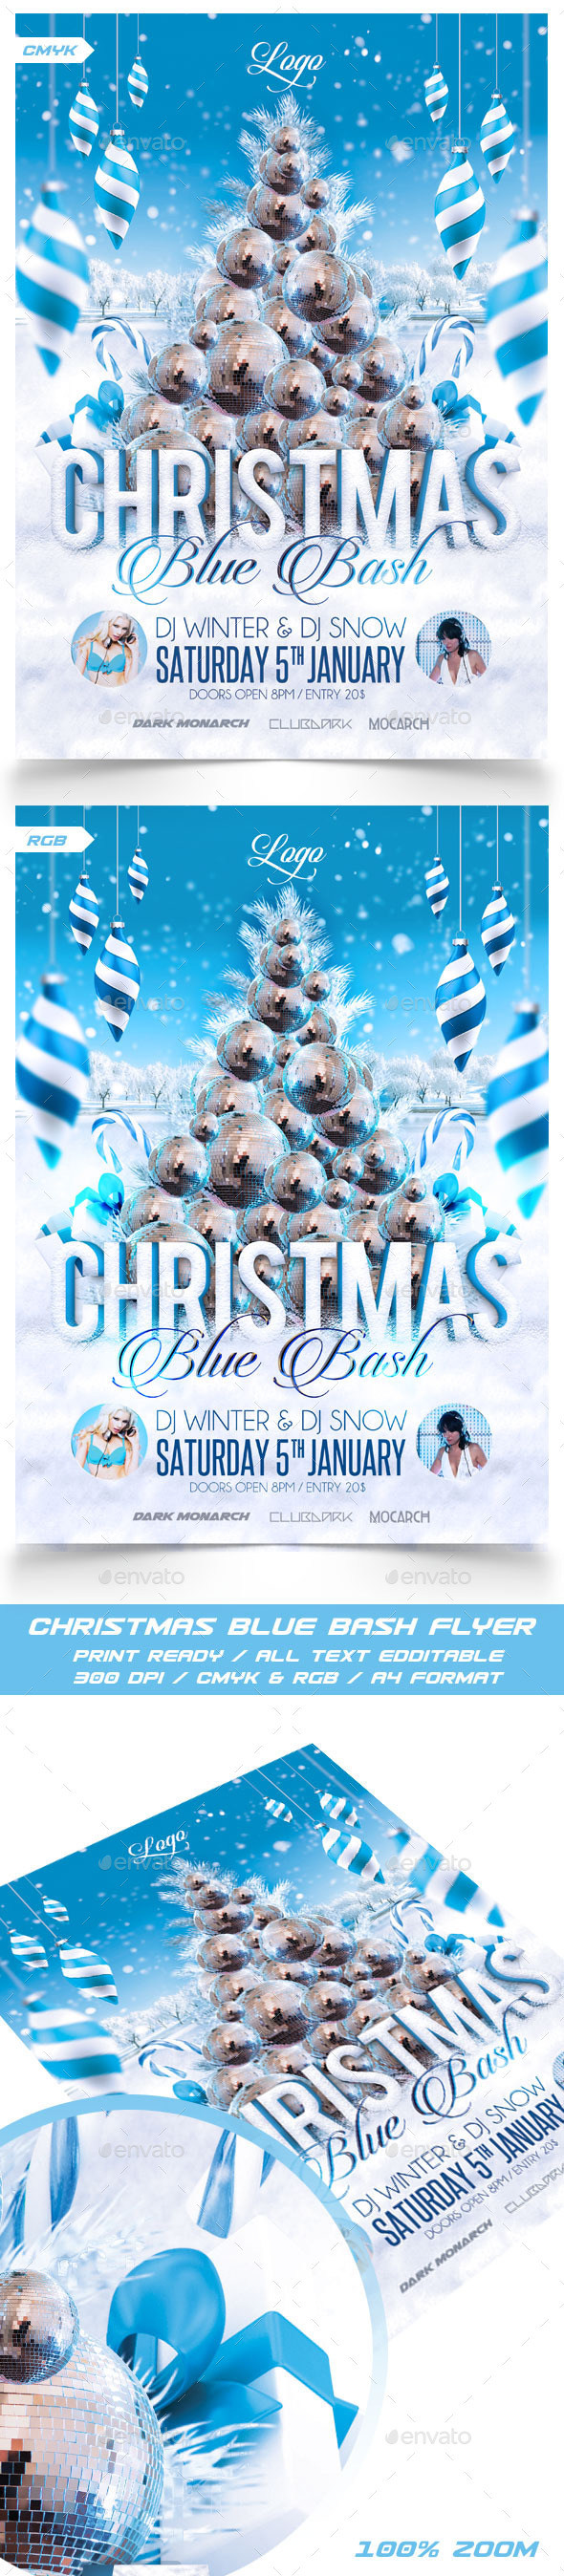 Christmas Blue Bash Party Flyer - Events Flyers